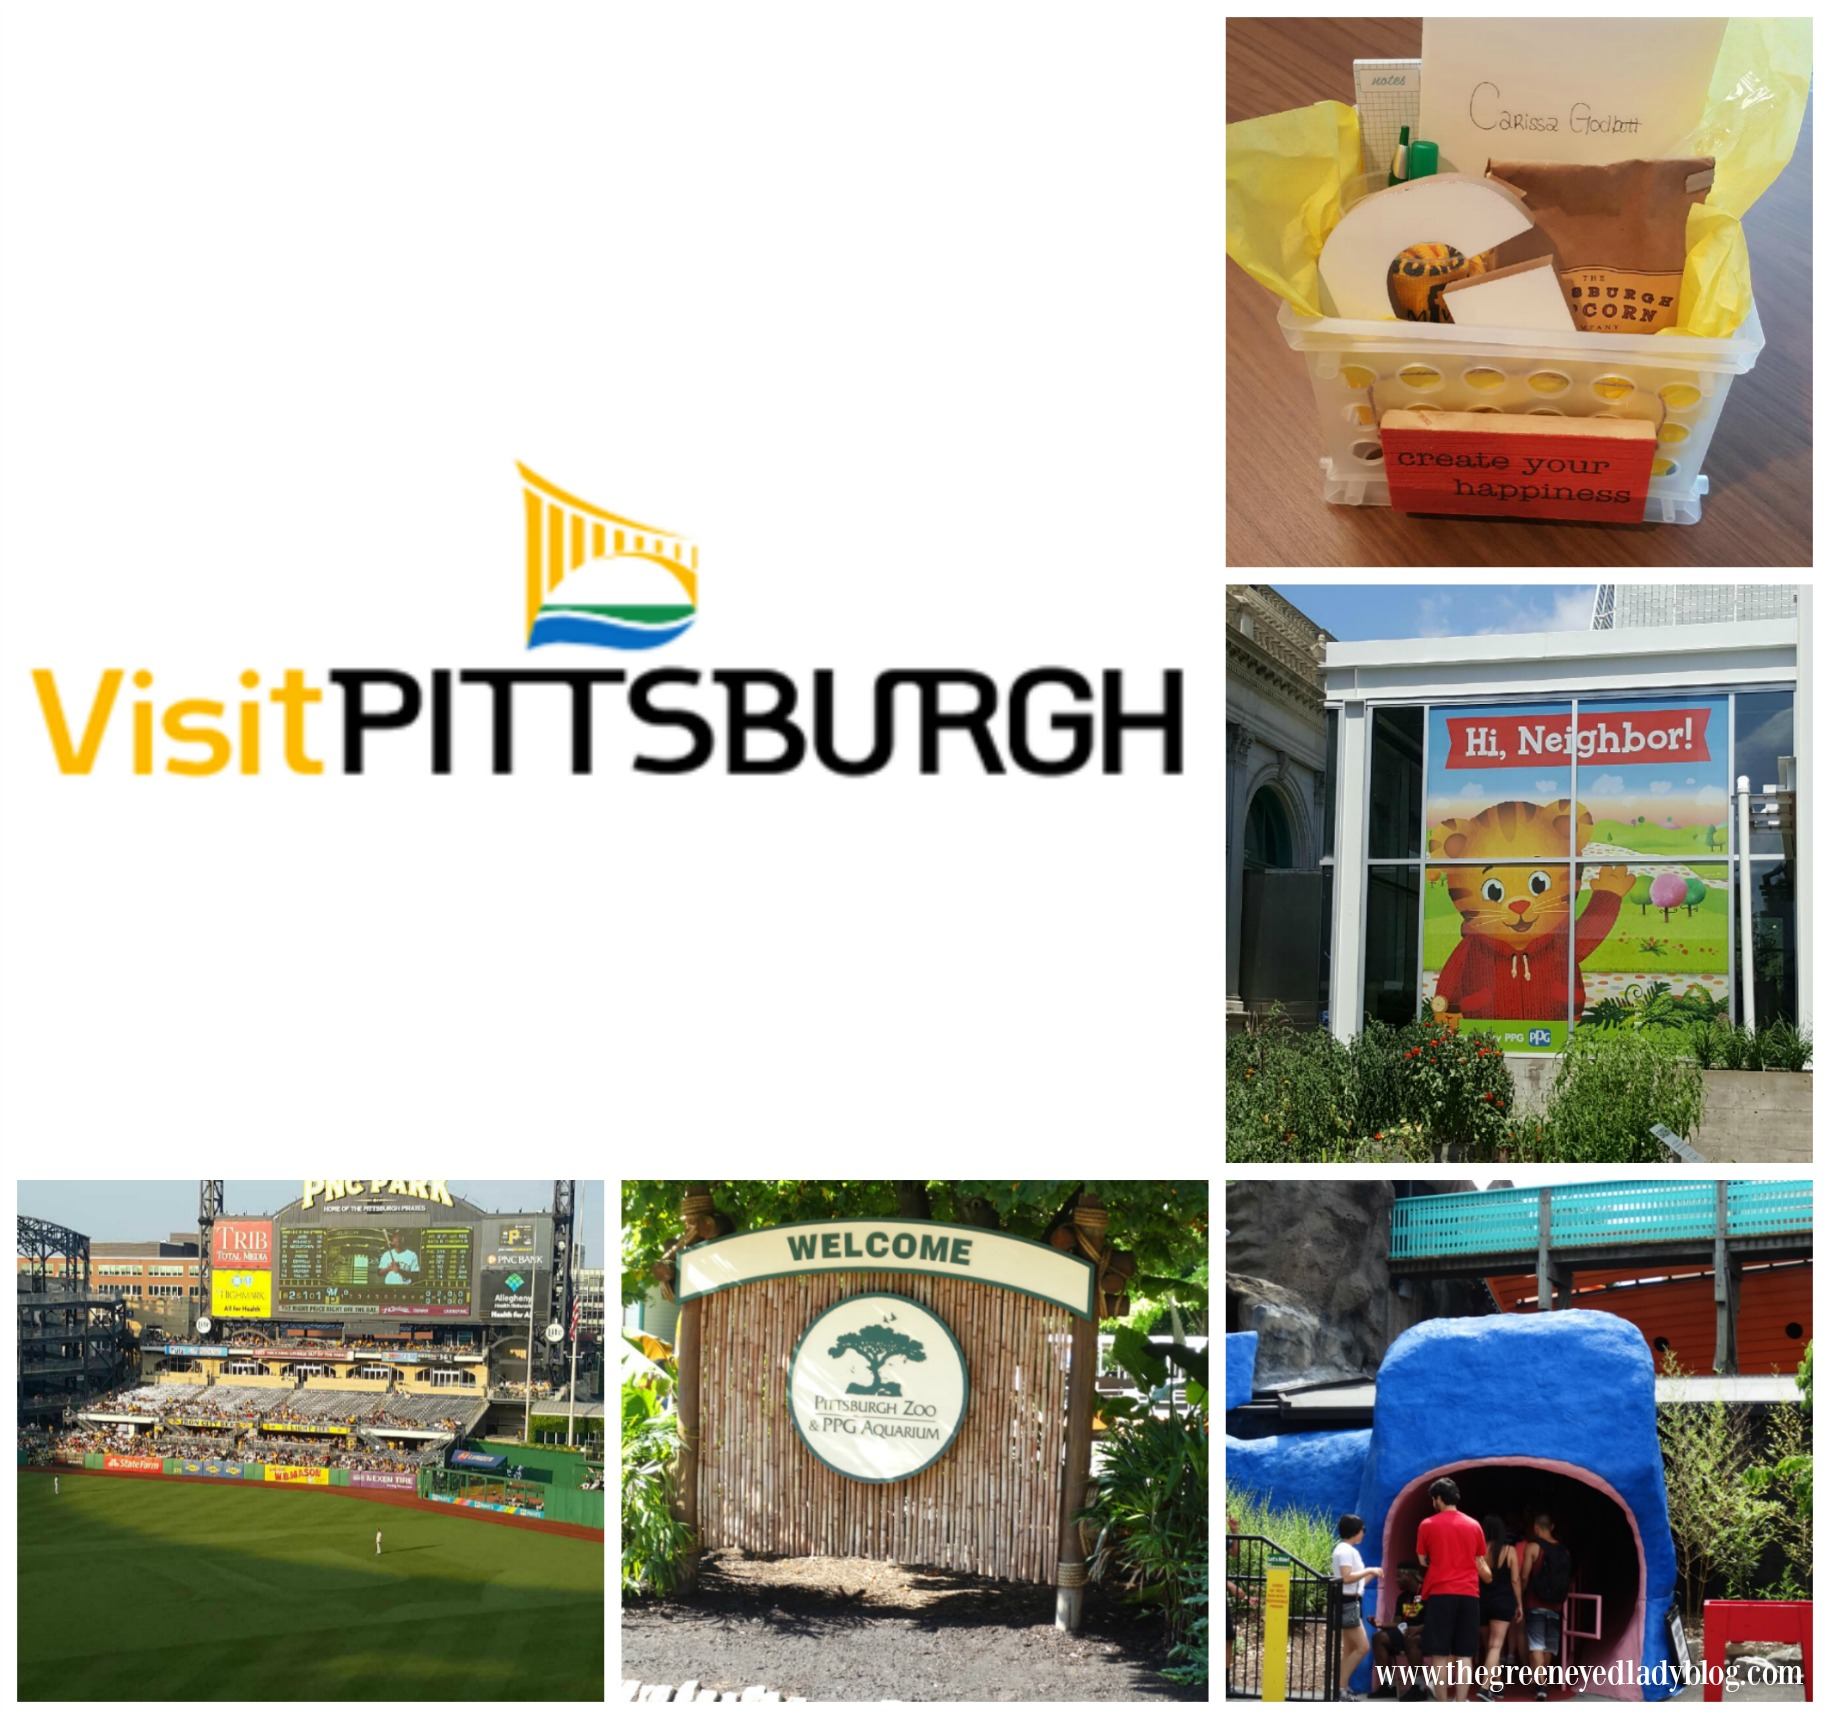 PittsburghCollage2